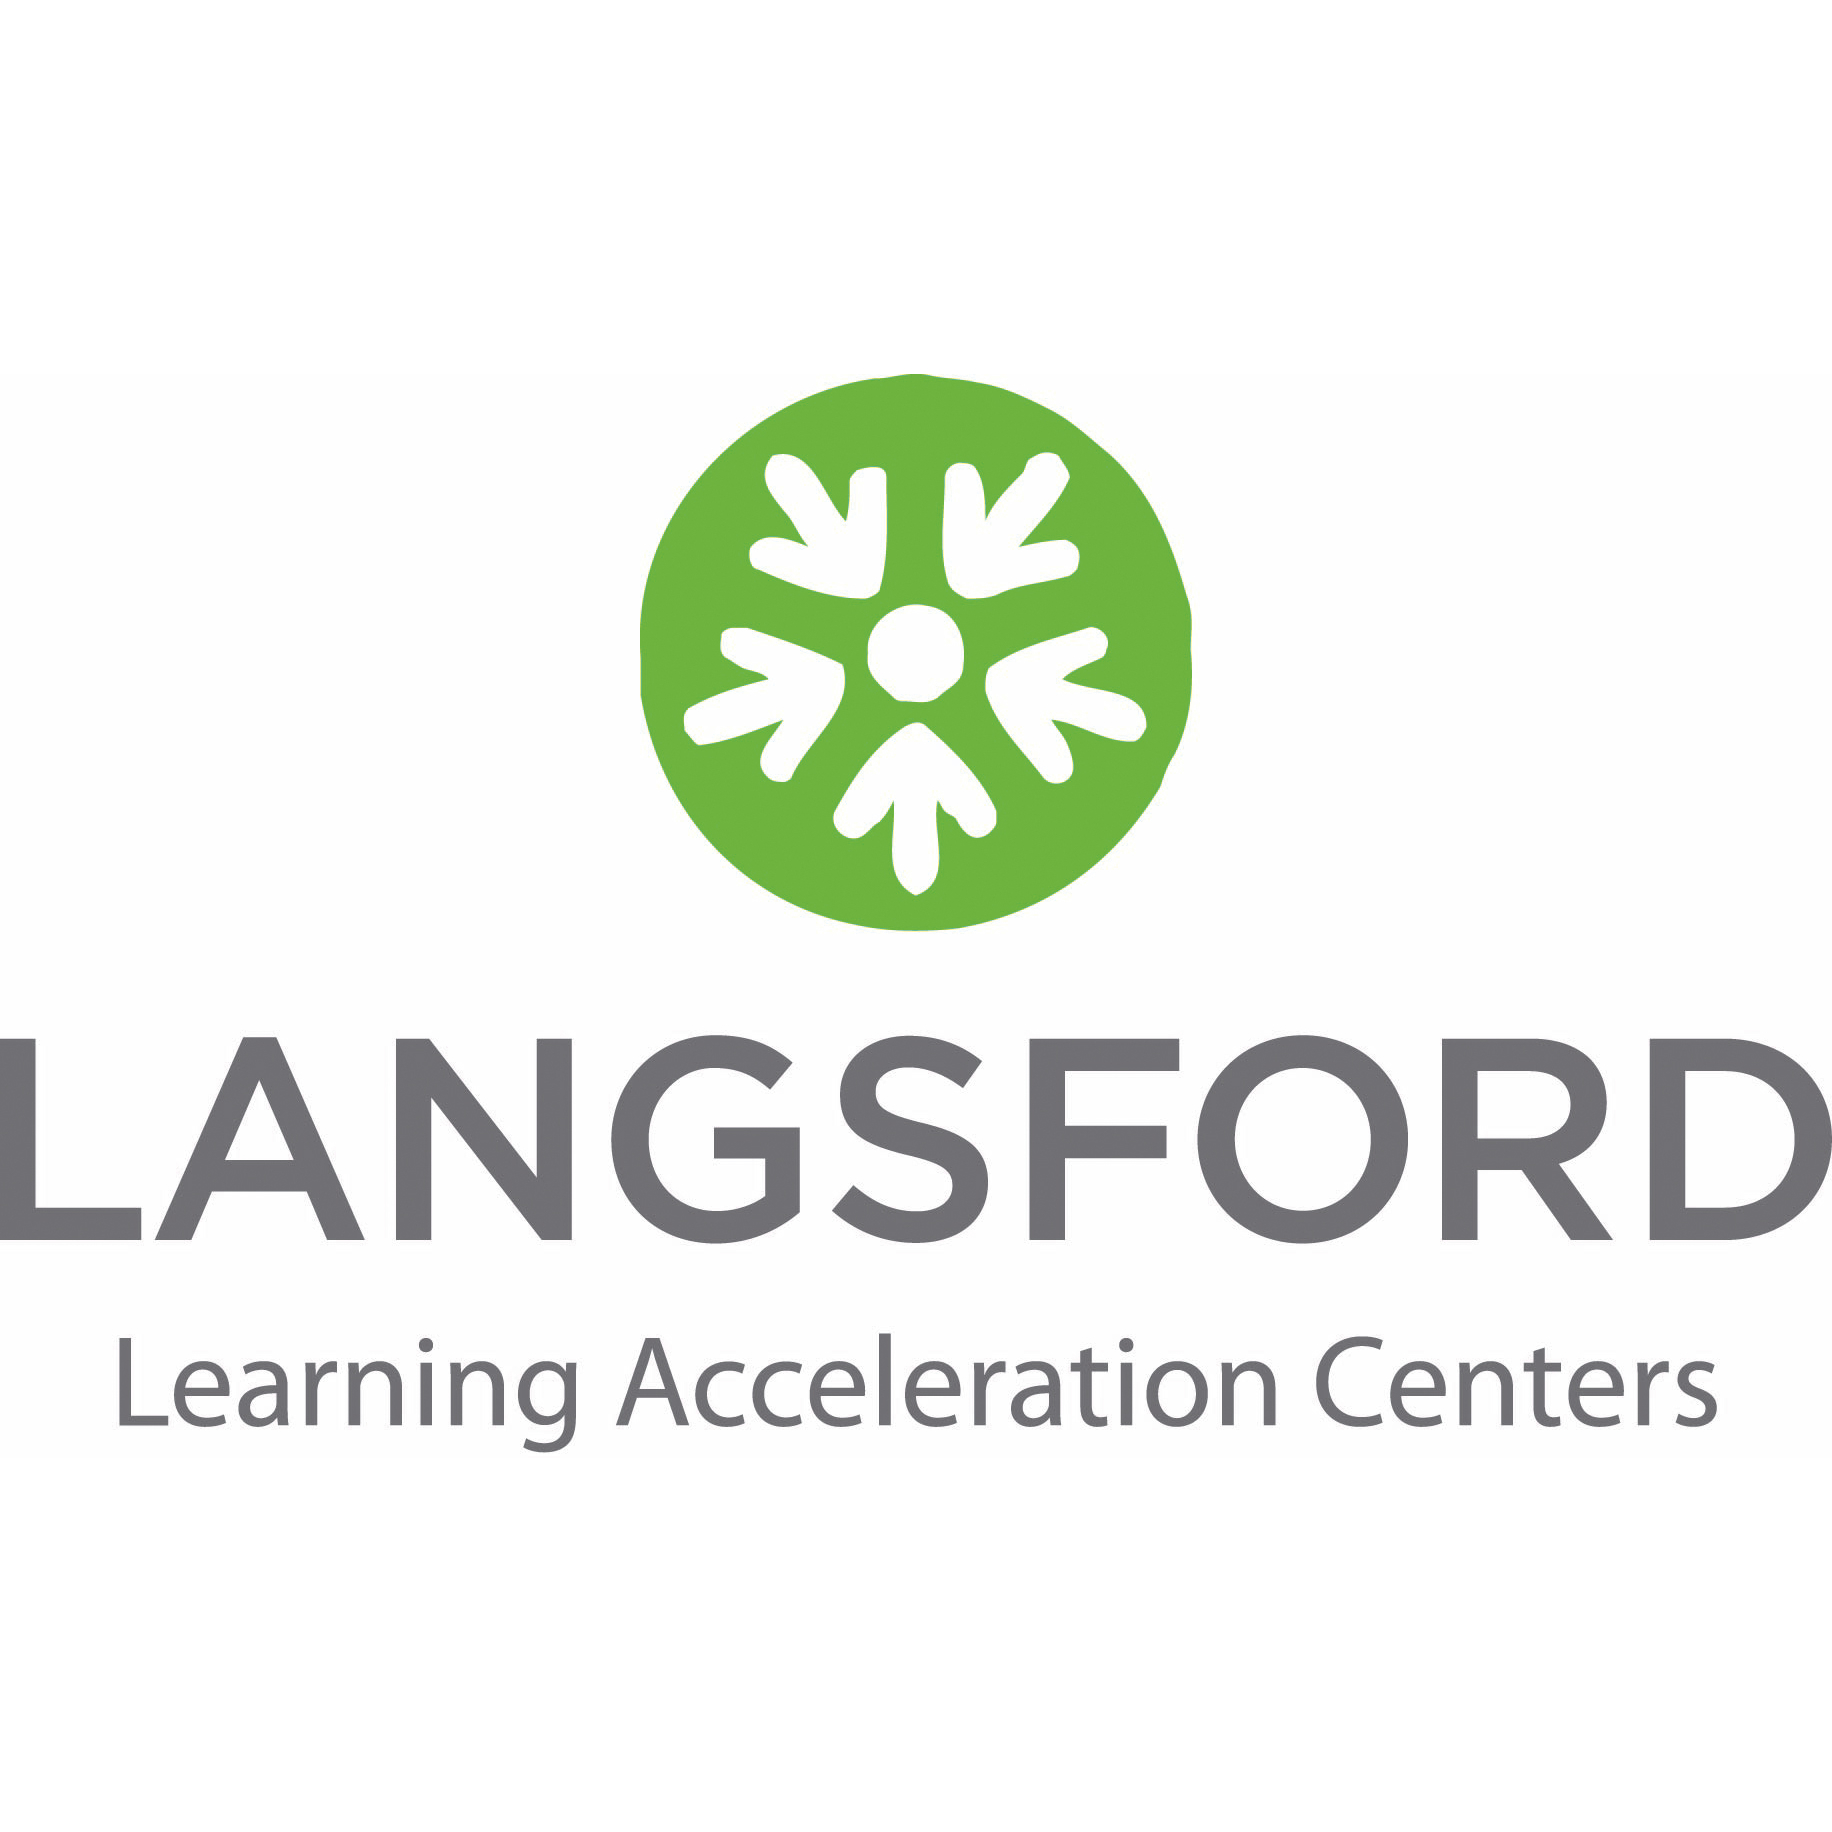 Langsford Learning Acceleration Centers